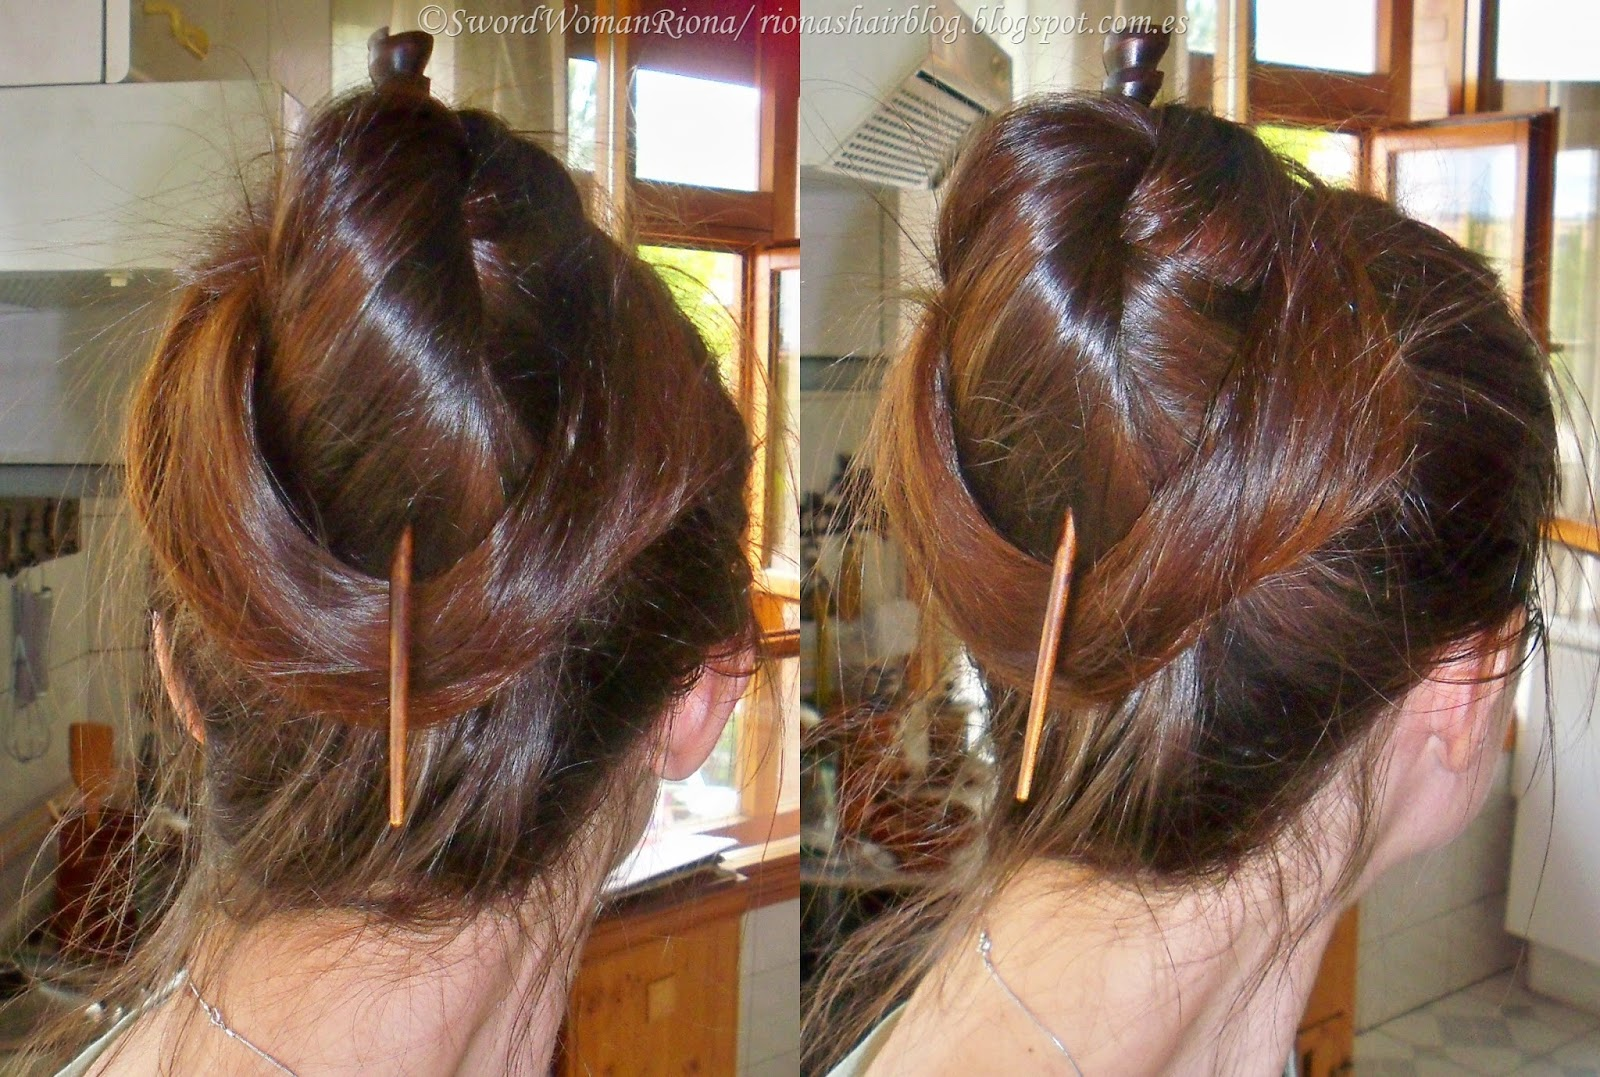 A Sword woman s Natural Hair blog  2011 15 hair  Random updos Flipped bun variation with a stick  Instead of flipping all hair before  inserting the fork o stick  here I flipped half of the hair and wrapped the  rest